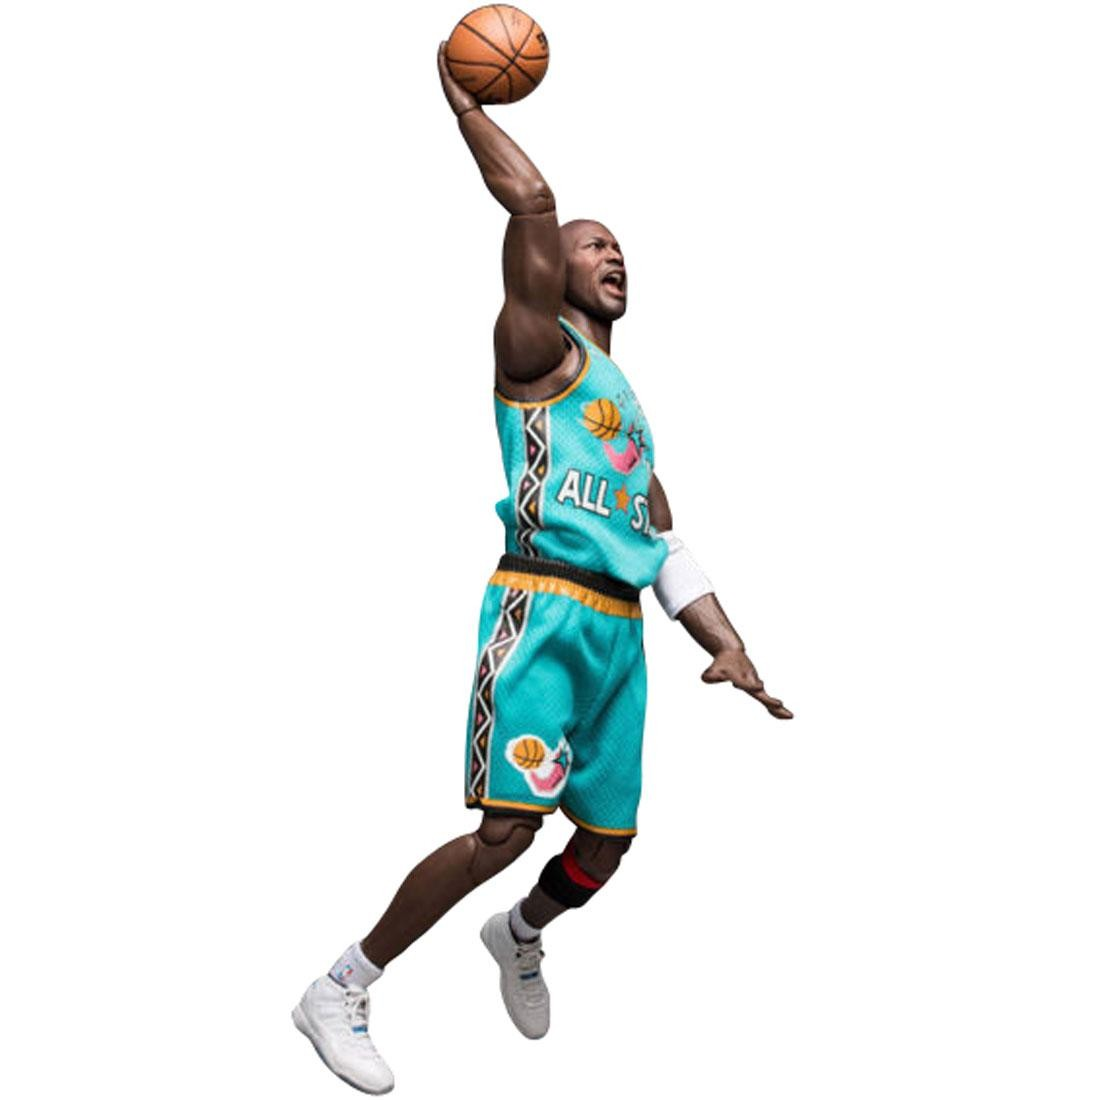 NBA x Enterbay Michael Jordan 1996 All Star Game 1 6 Scale 12 Inch Figure  teal 2c0148a48